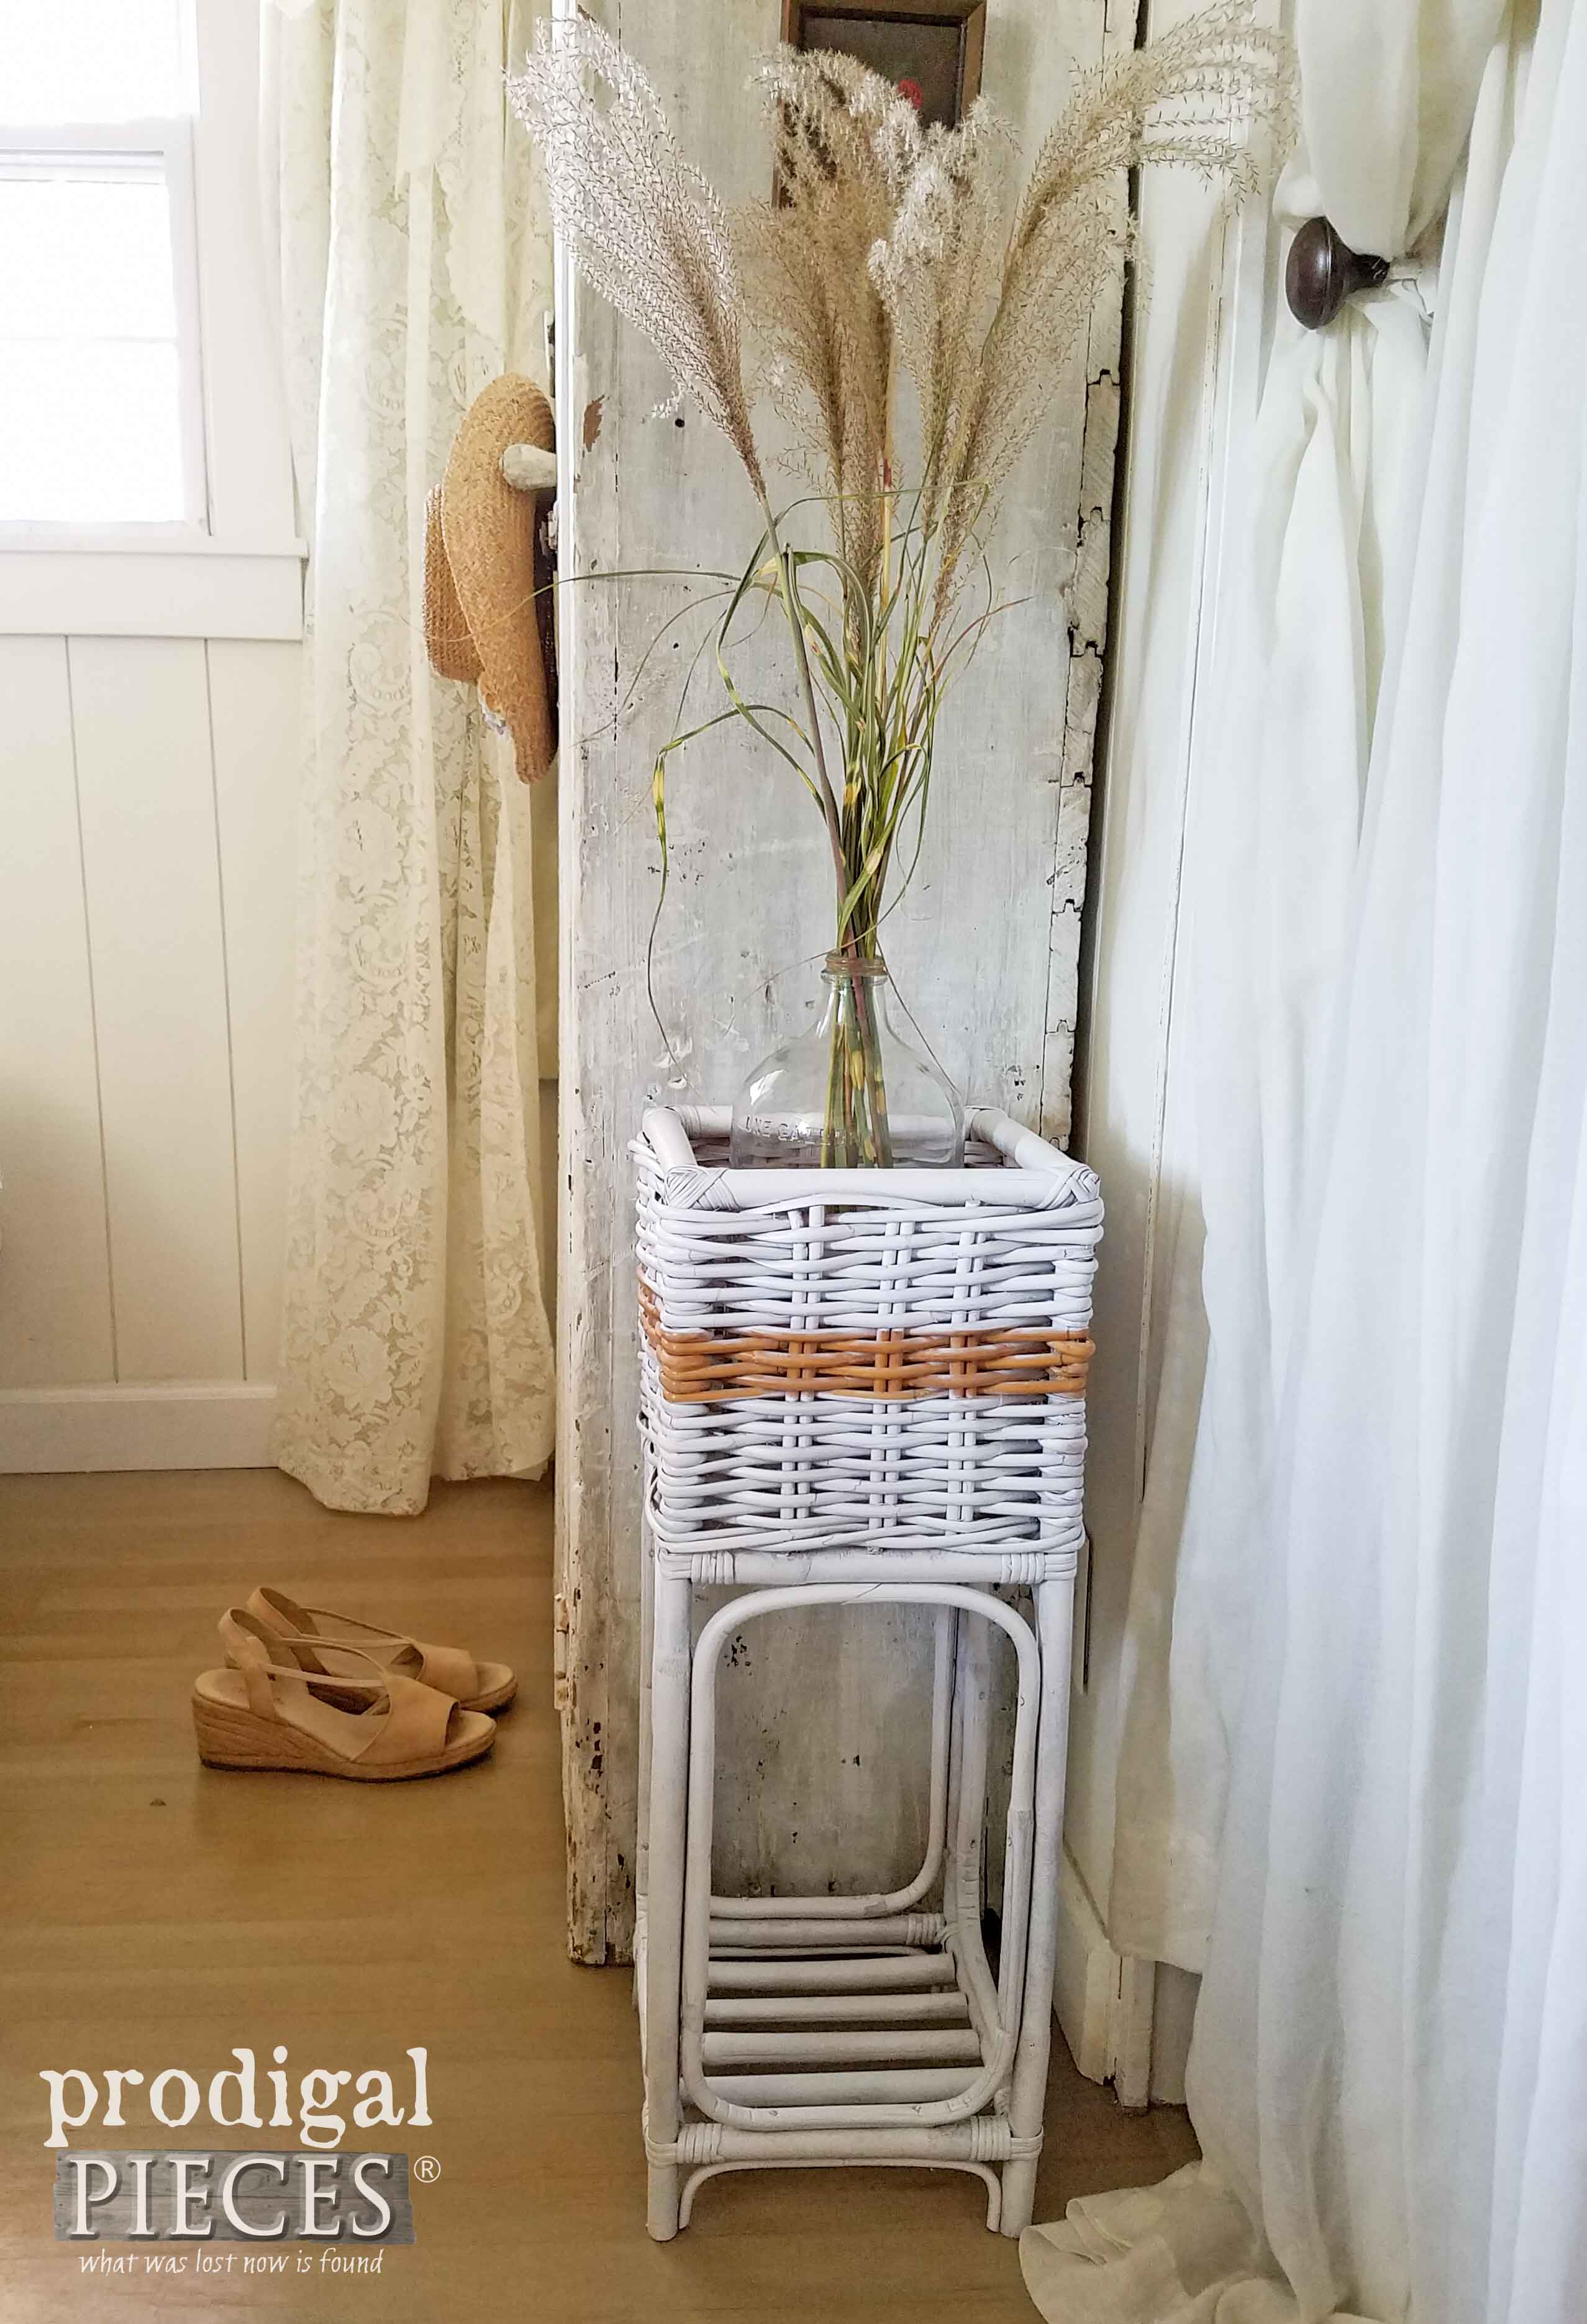 Repurposed Thrifted Plant Stand gets Farmhouse Chic Makeover by Prodigal Pieces | www.prodigalpieces.com